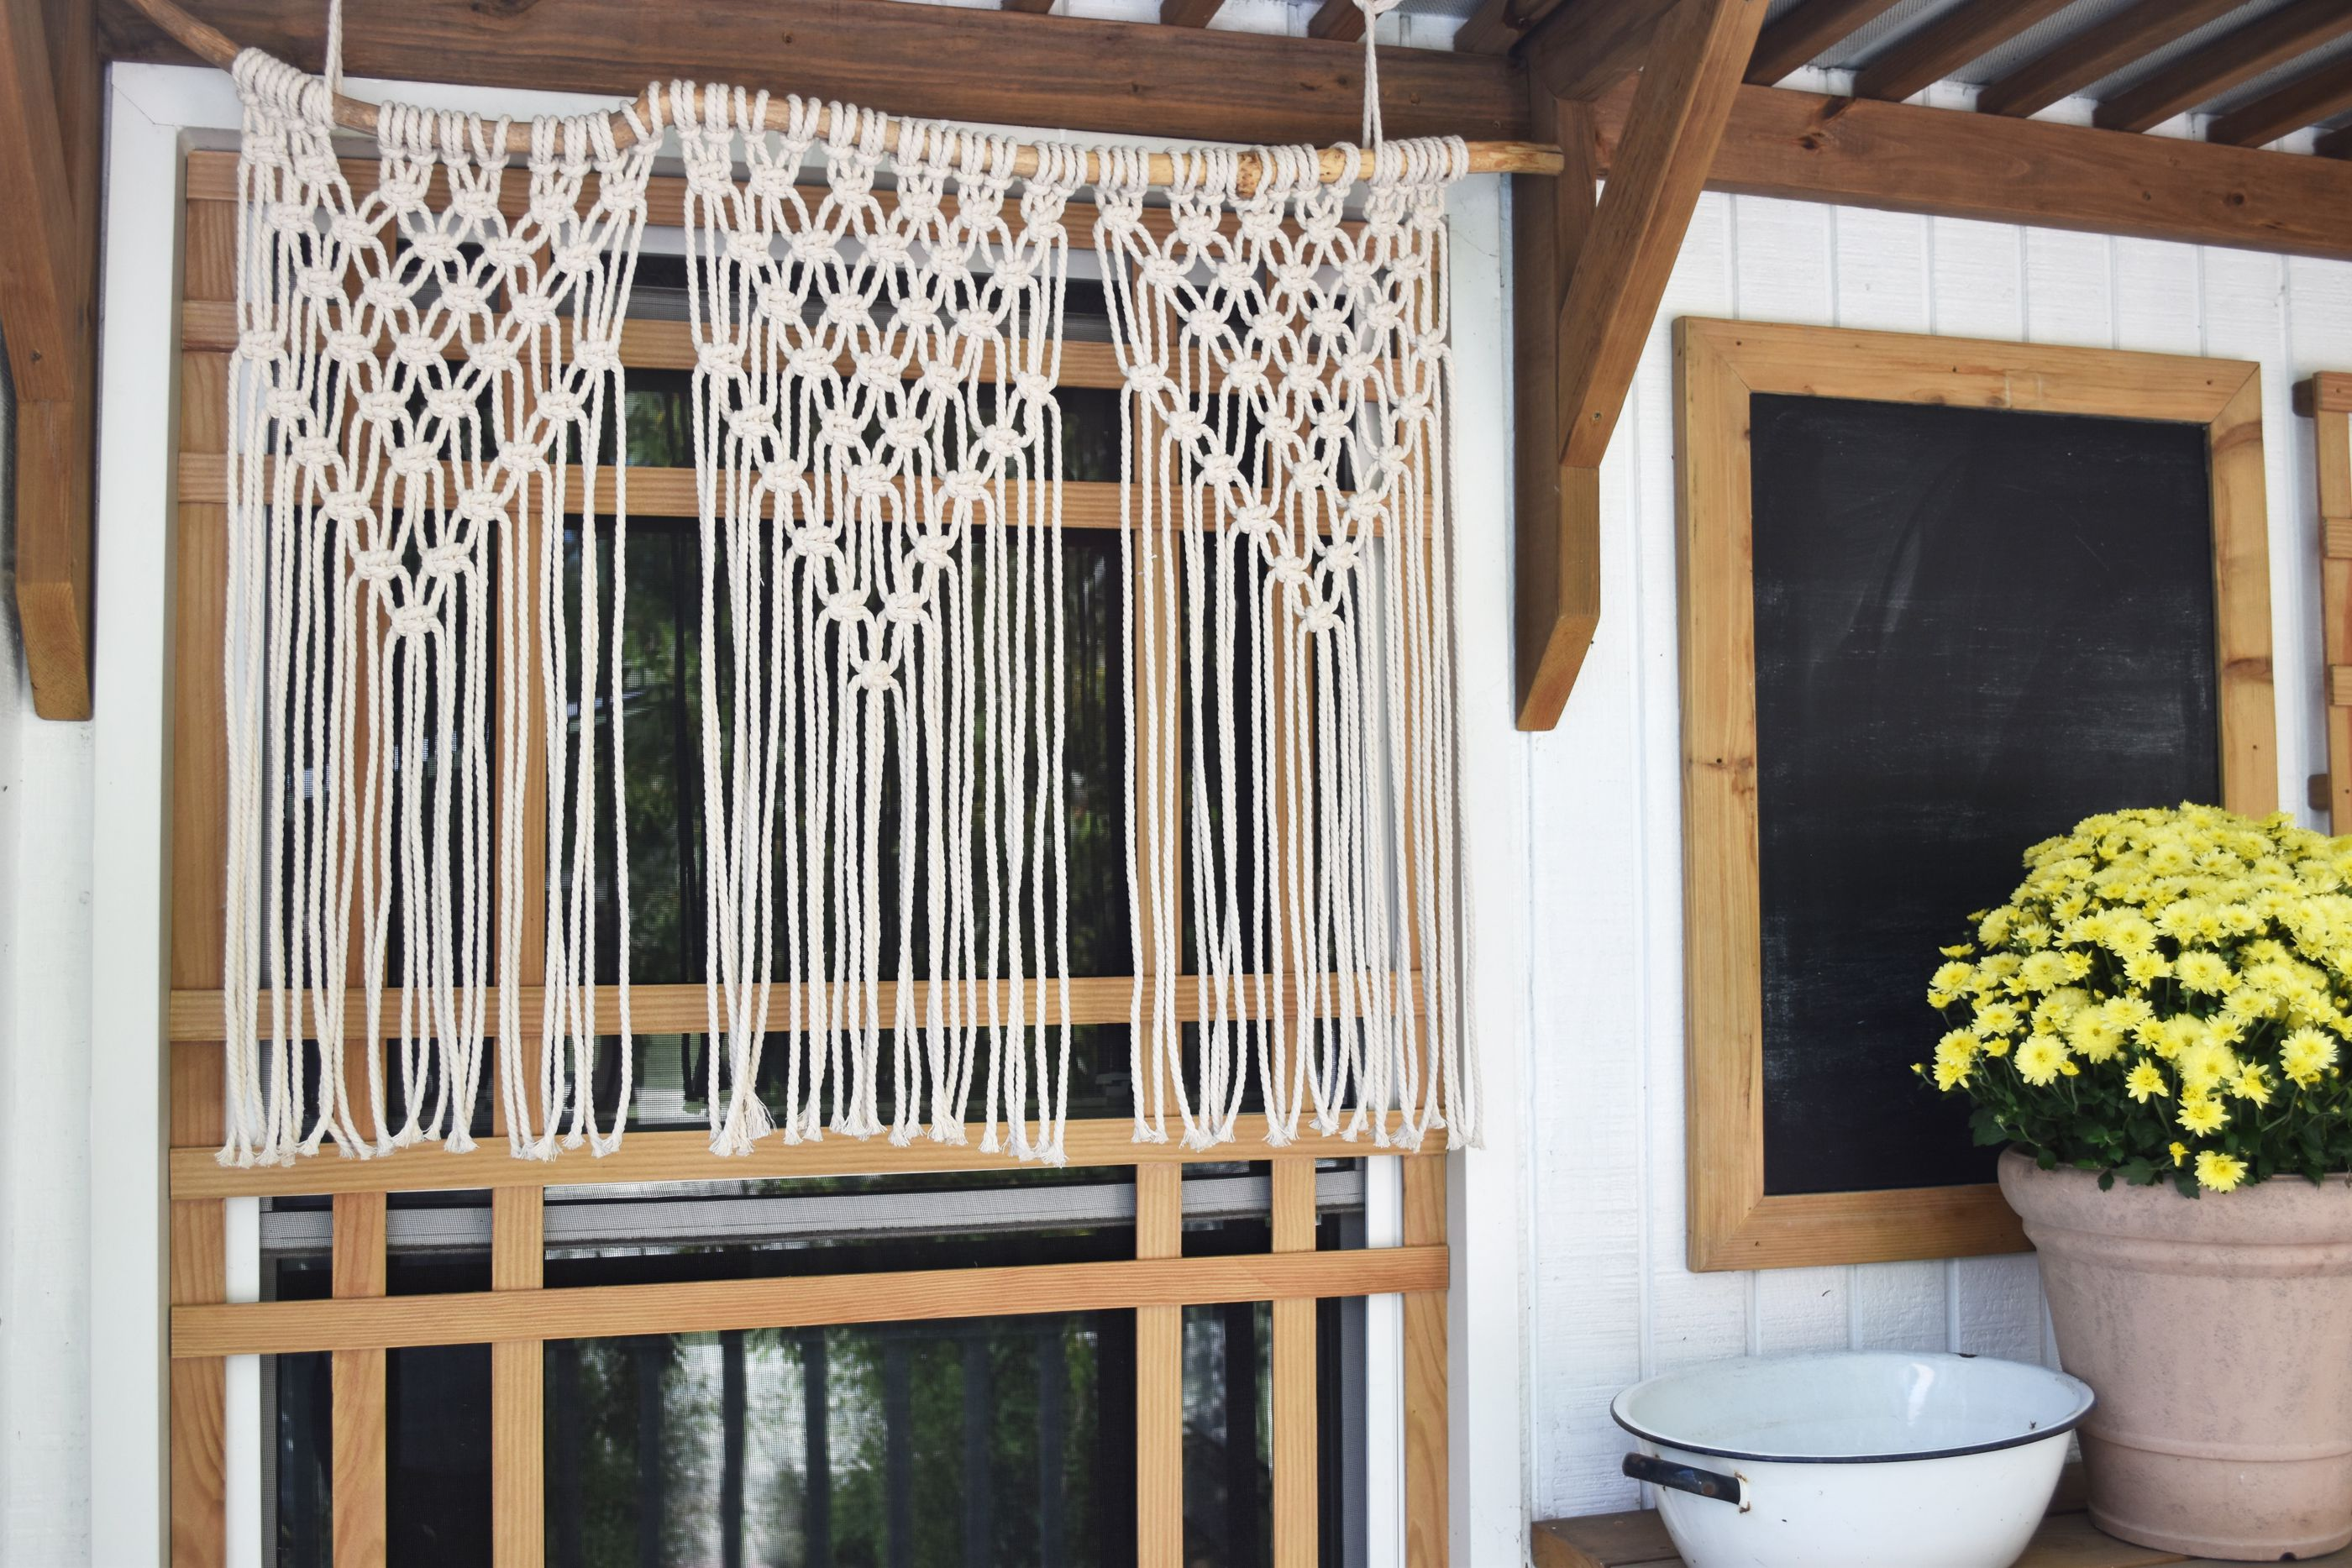 How To Make Diy Macrame Curtains